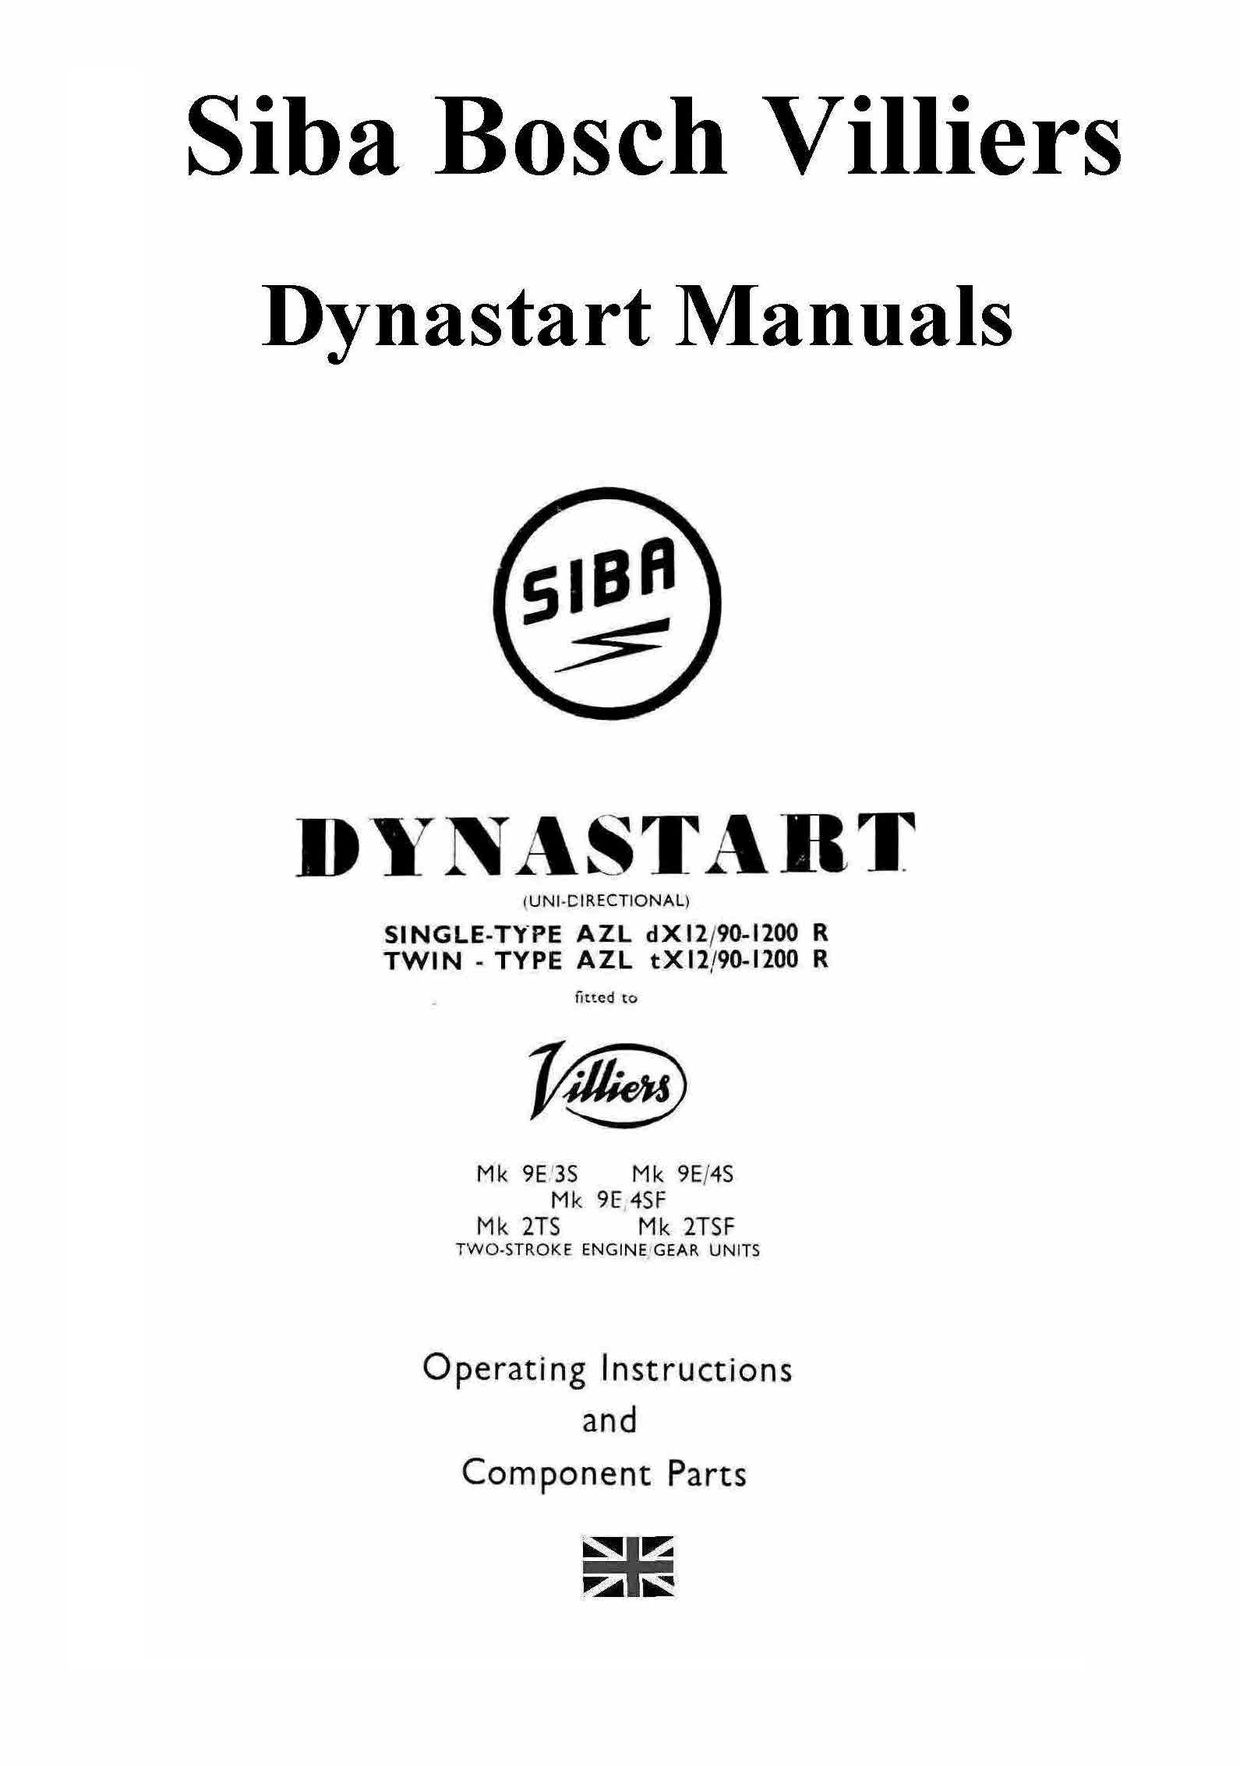 Villiers Siba Dynastart Manuals For Mechanics Vintage Auto Manual New Holland Lawn Tractor Wiring Diagram Instructions And Parts Manualvarious Diagramsfor Bosch Diagramssome Compleet Some Experimentalall Very Usef